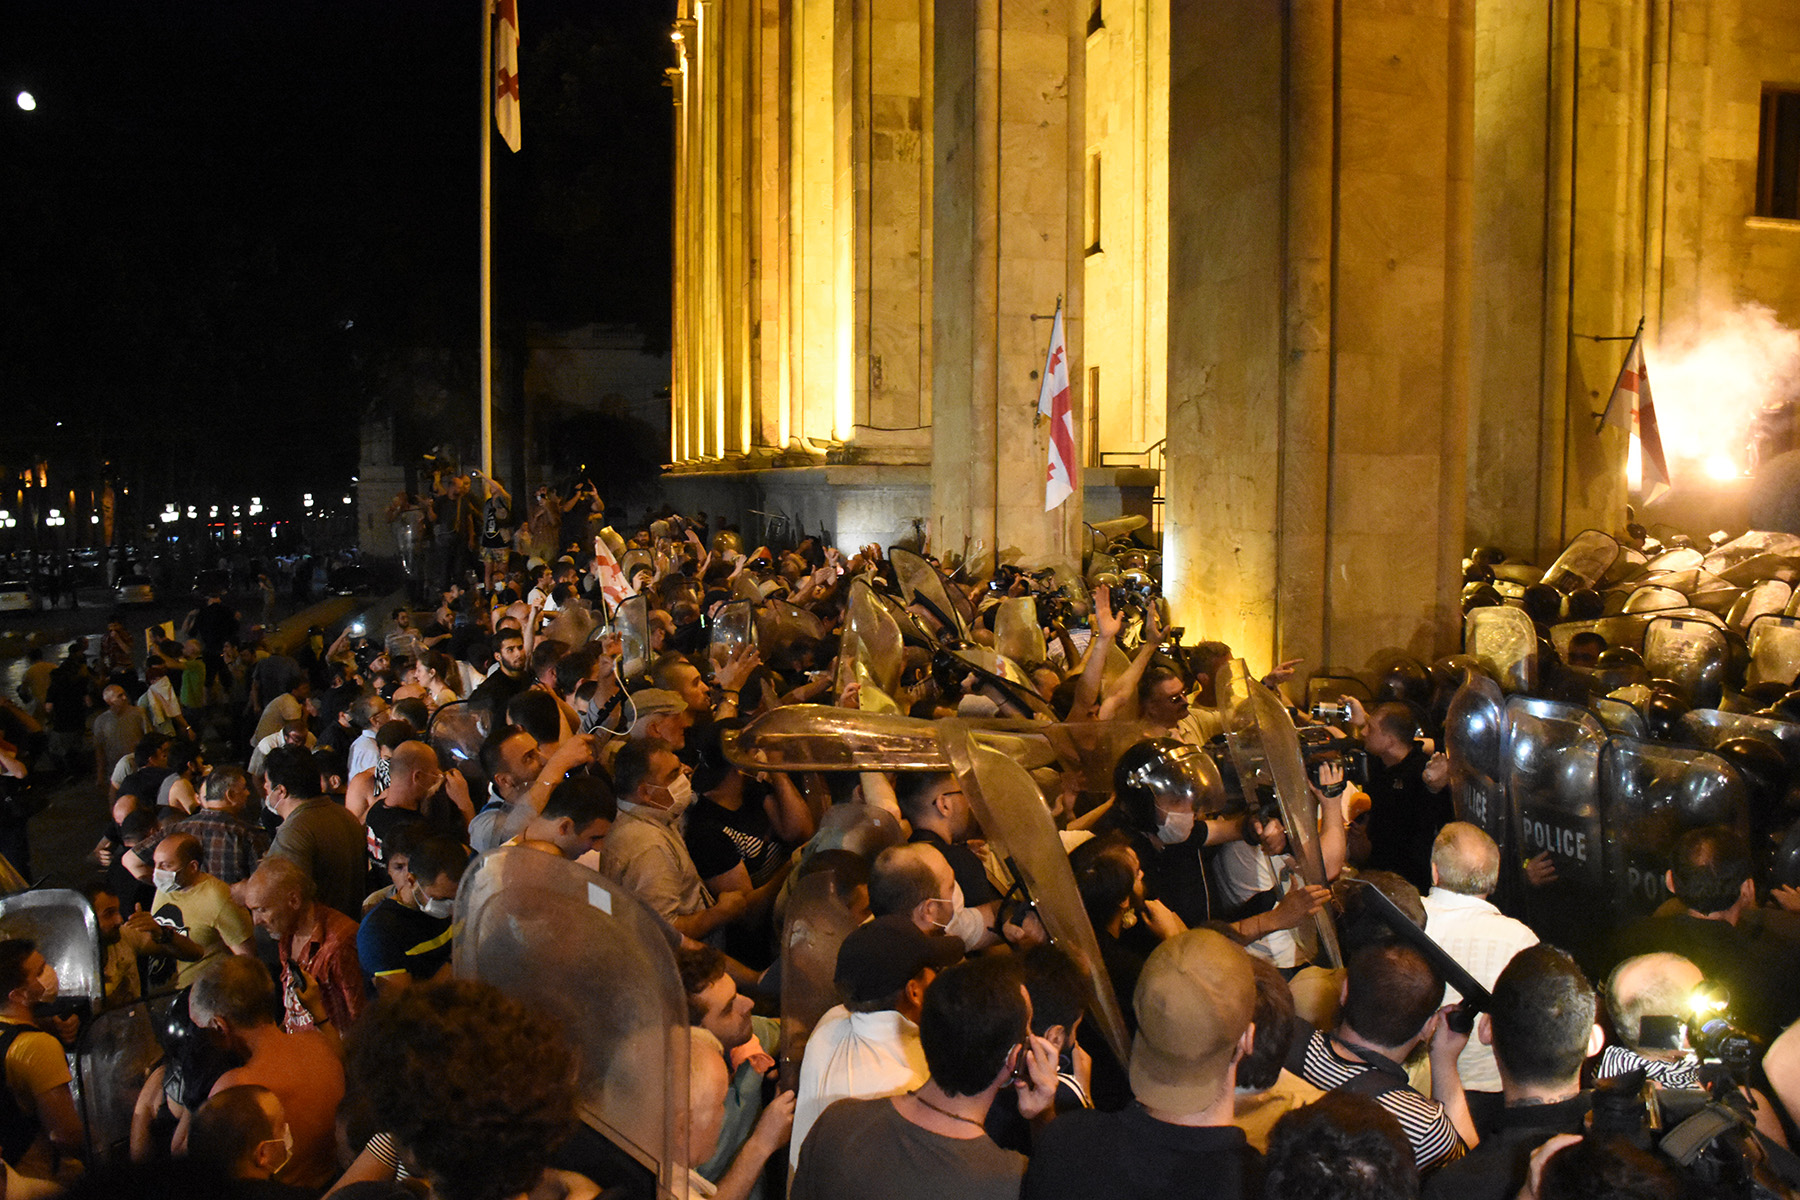 Protesters and police clashed for hours on the night of 20–21June. Photo: MariamNikuradze/OCMedia.